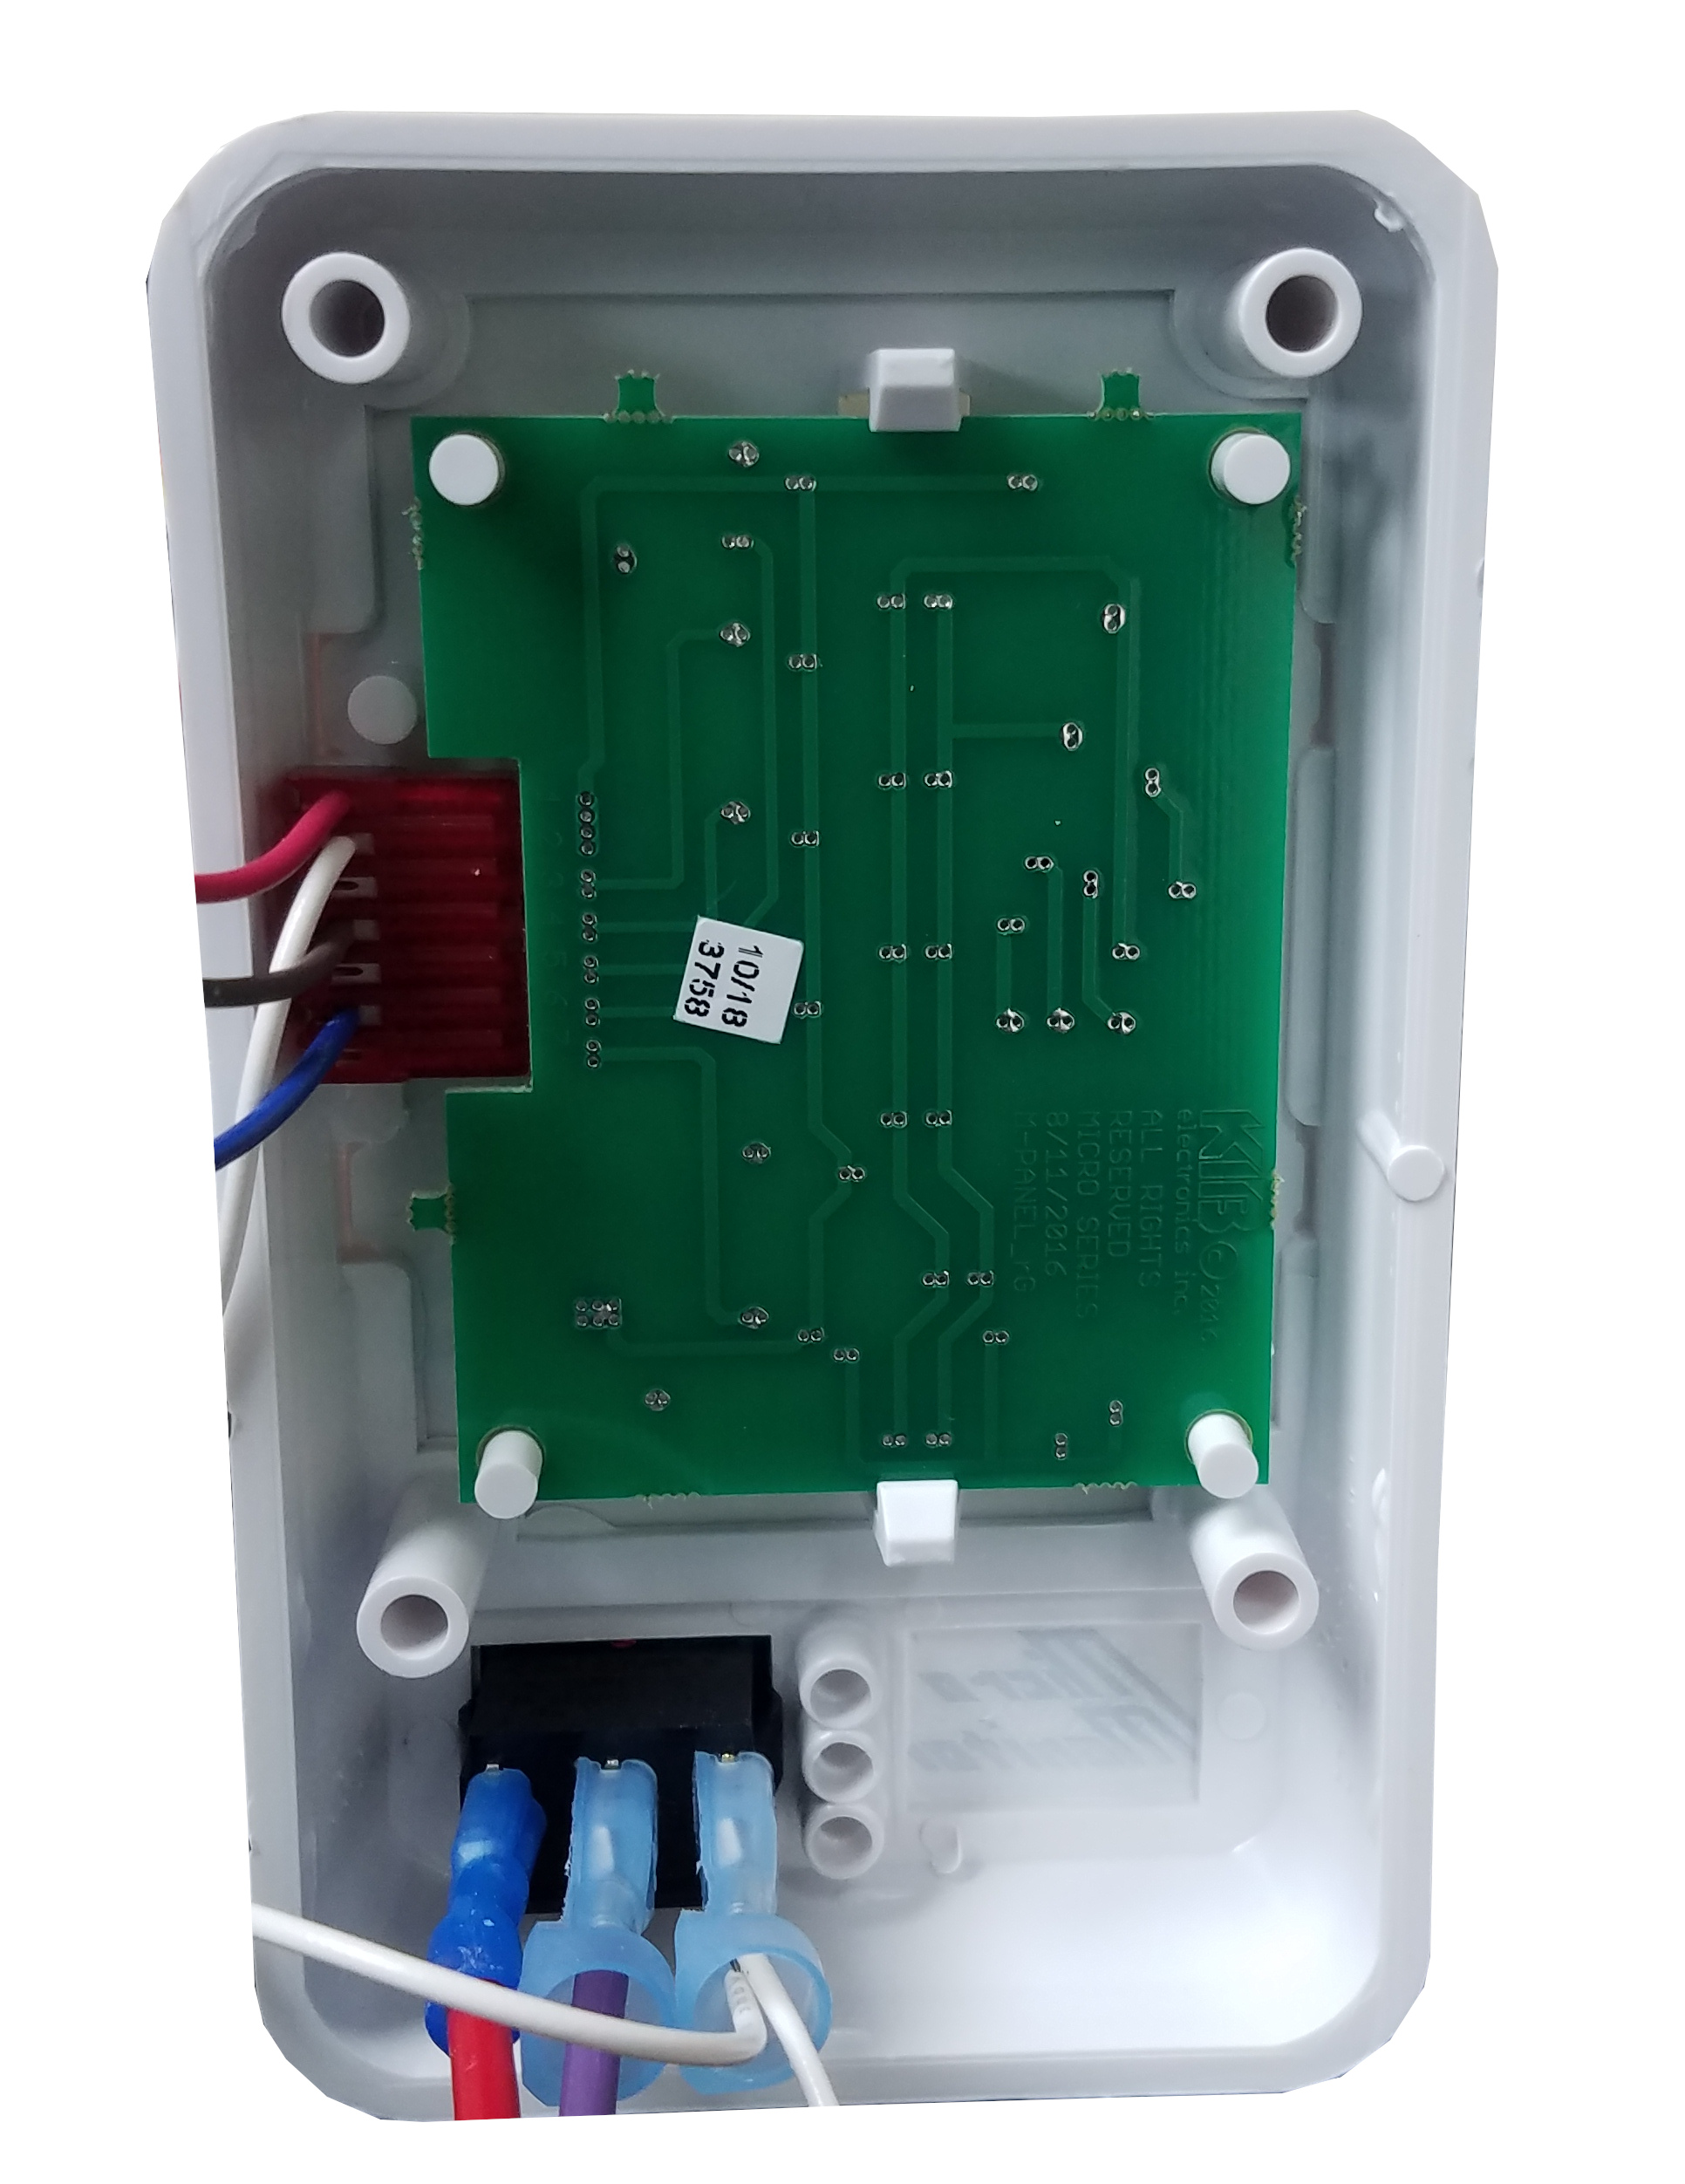 Jrv Monitor Panel Wiring Diagram | Wiring Schematic Diagram on